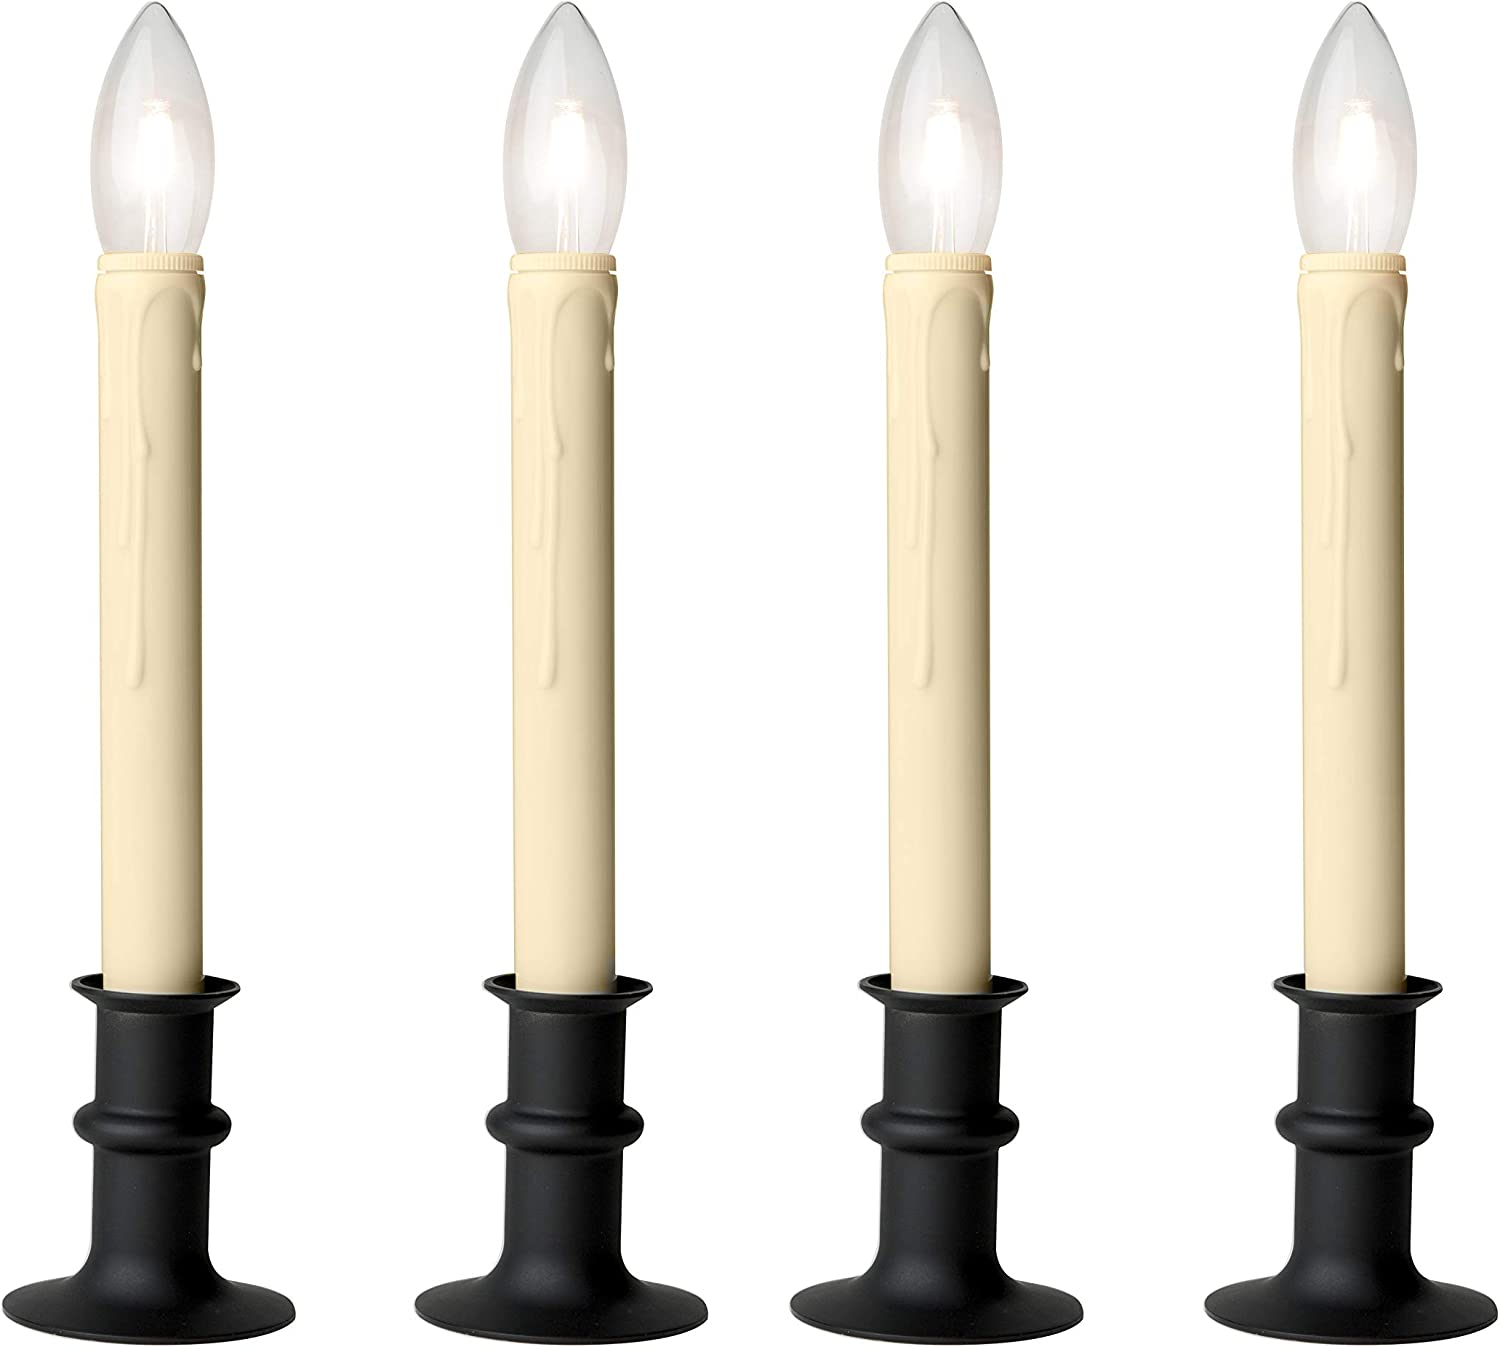 3xAA Celestial Lights Set of 2 Candle Tube Replacements for Candles